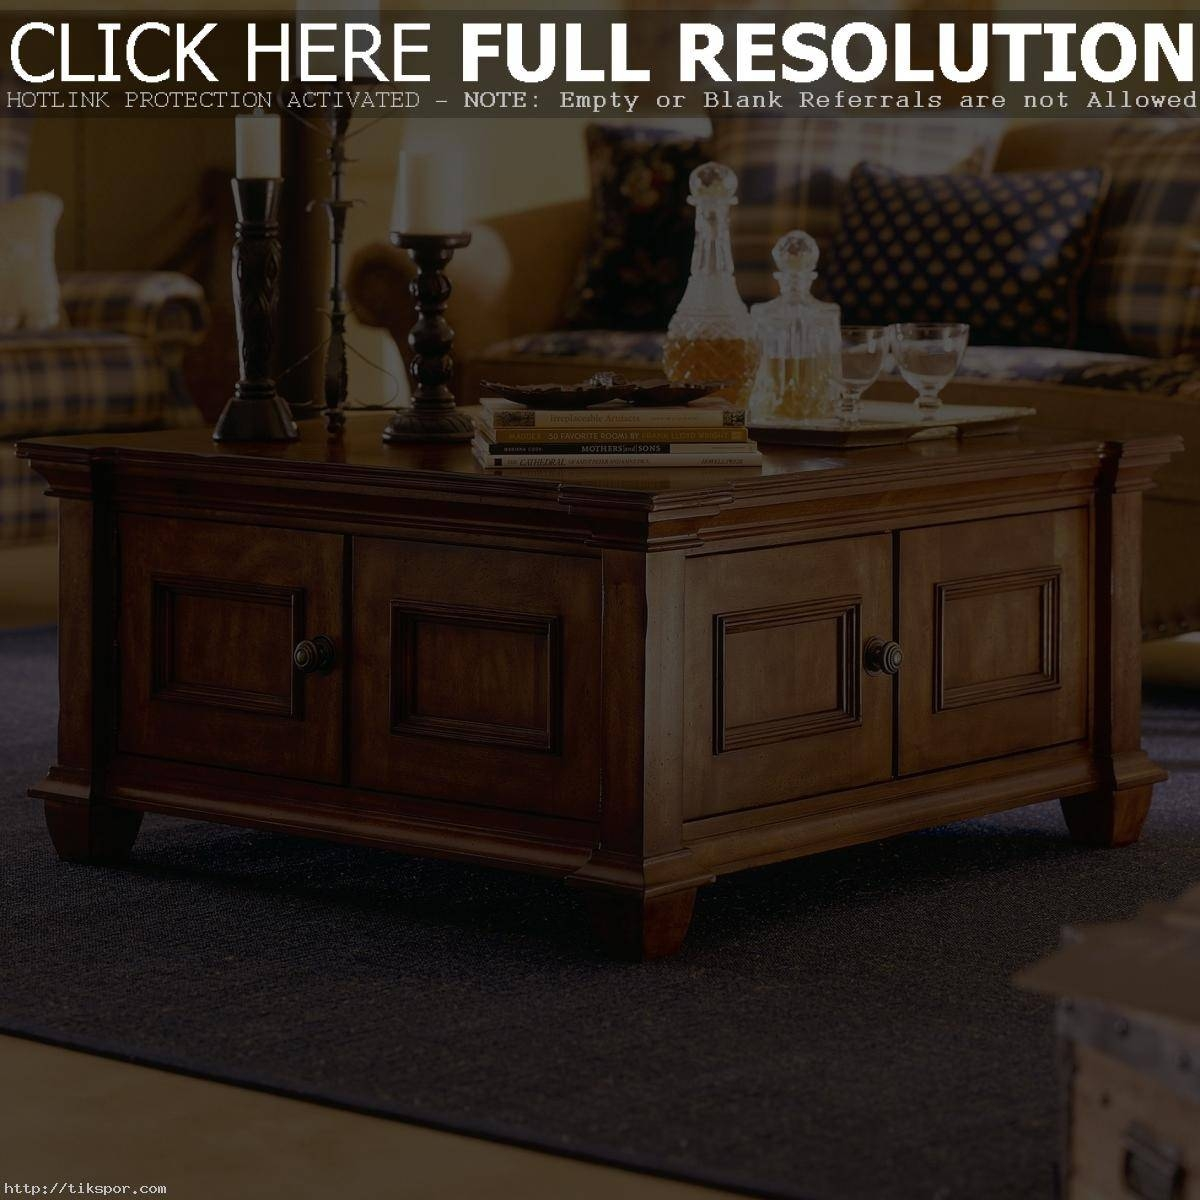 Coffee Table Excellent Square Coffee Tables With Storage Pictures within Large Square Coffee Table With Storage (Image 2 of 15)